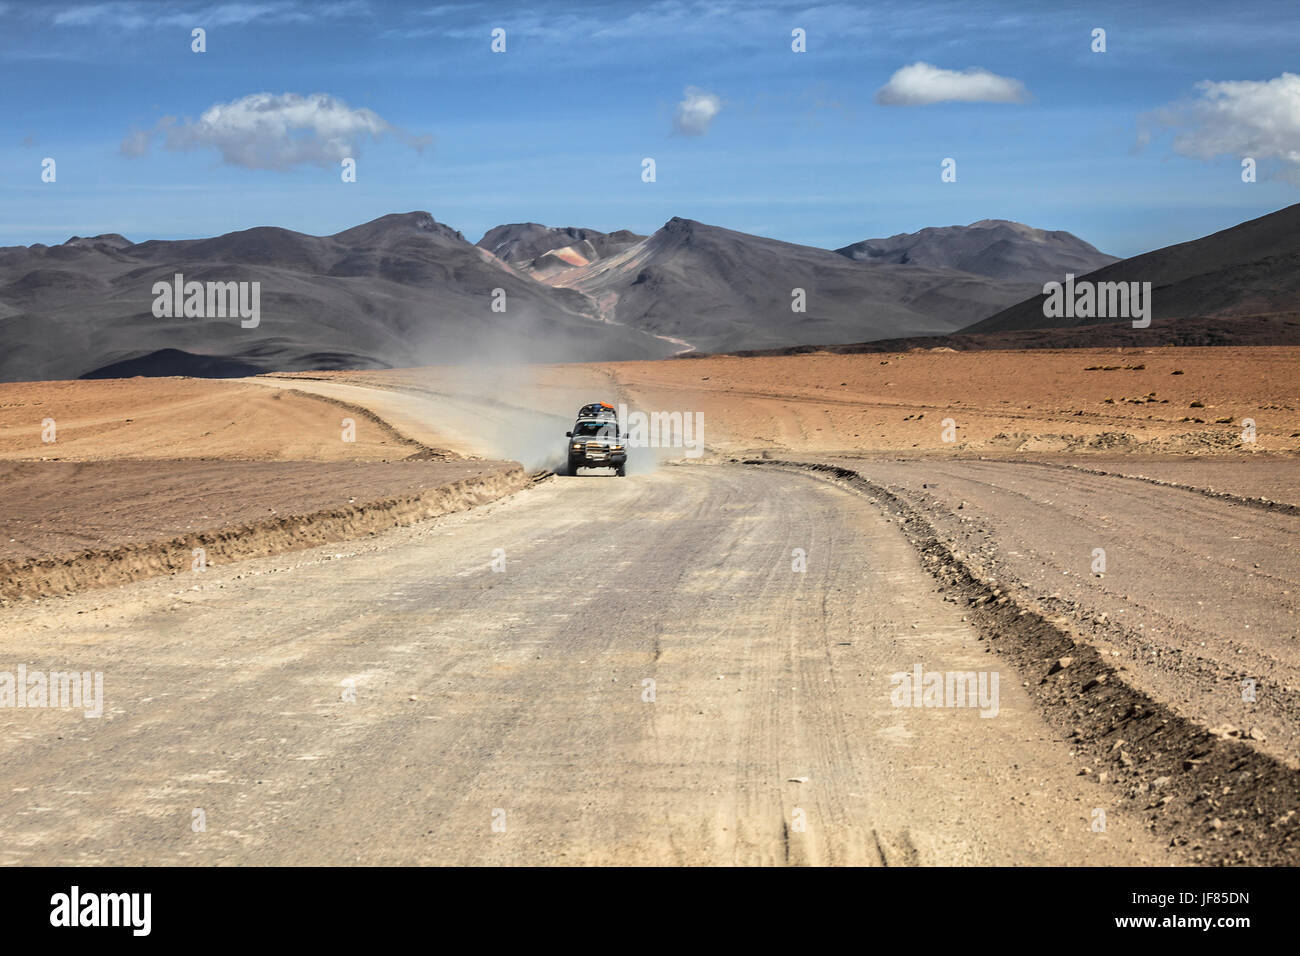 Altiplano of Bolivia. - Stock Image